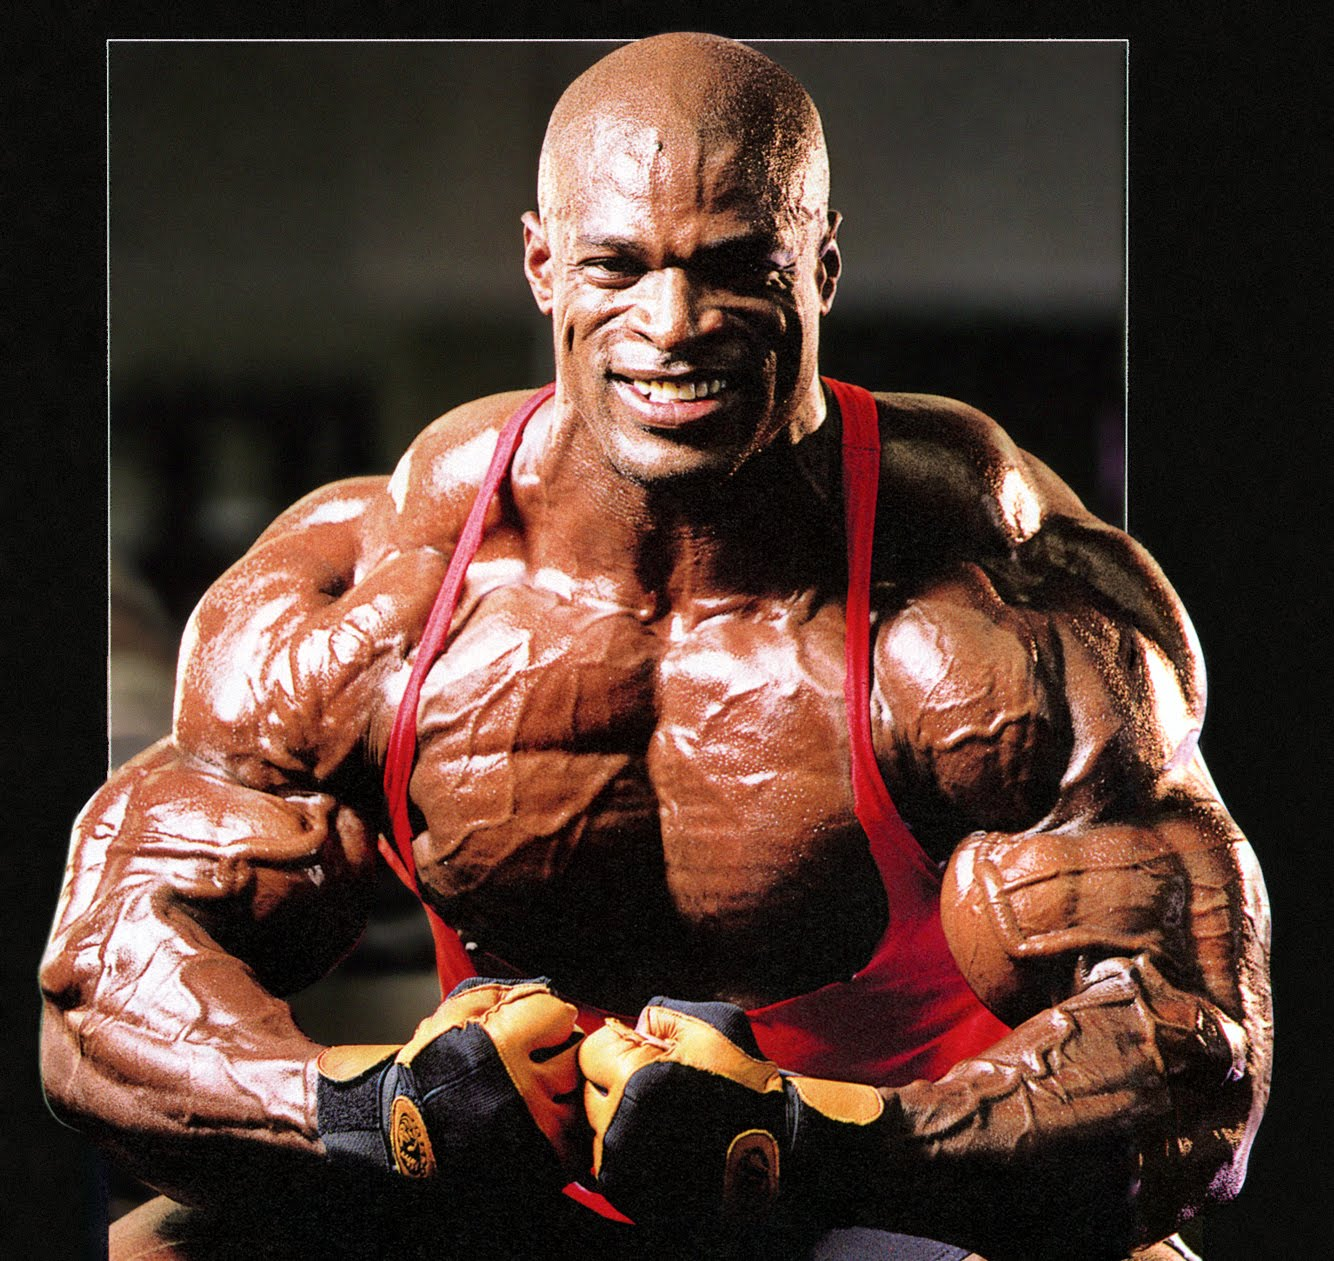 Mr. Olympia Ronnie Coleman: biography and photos. Ronnie Colemans training program, nutrition rules